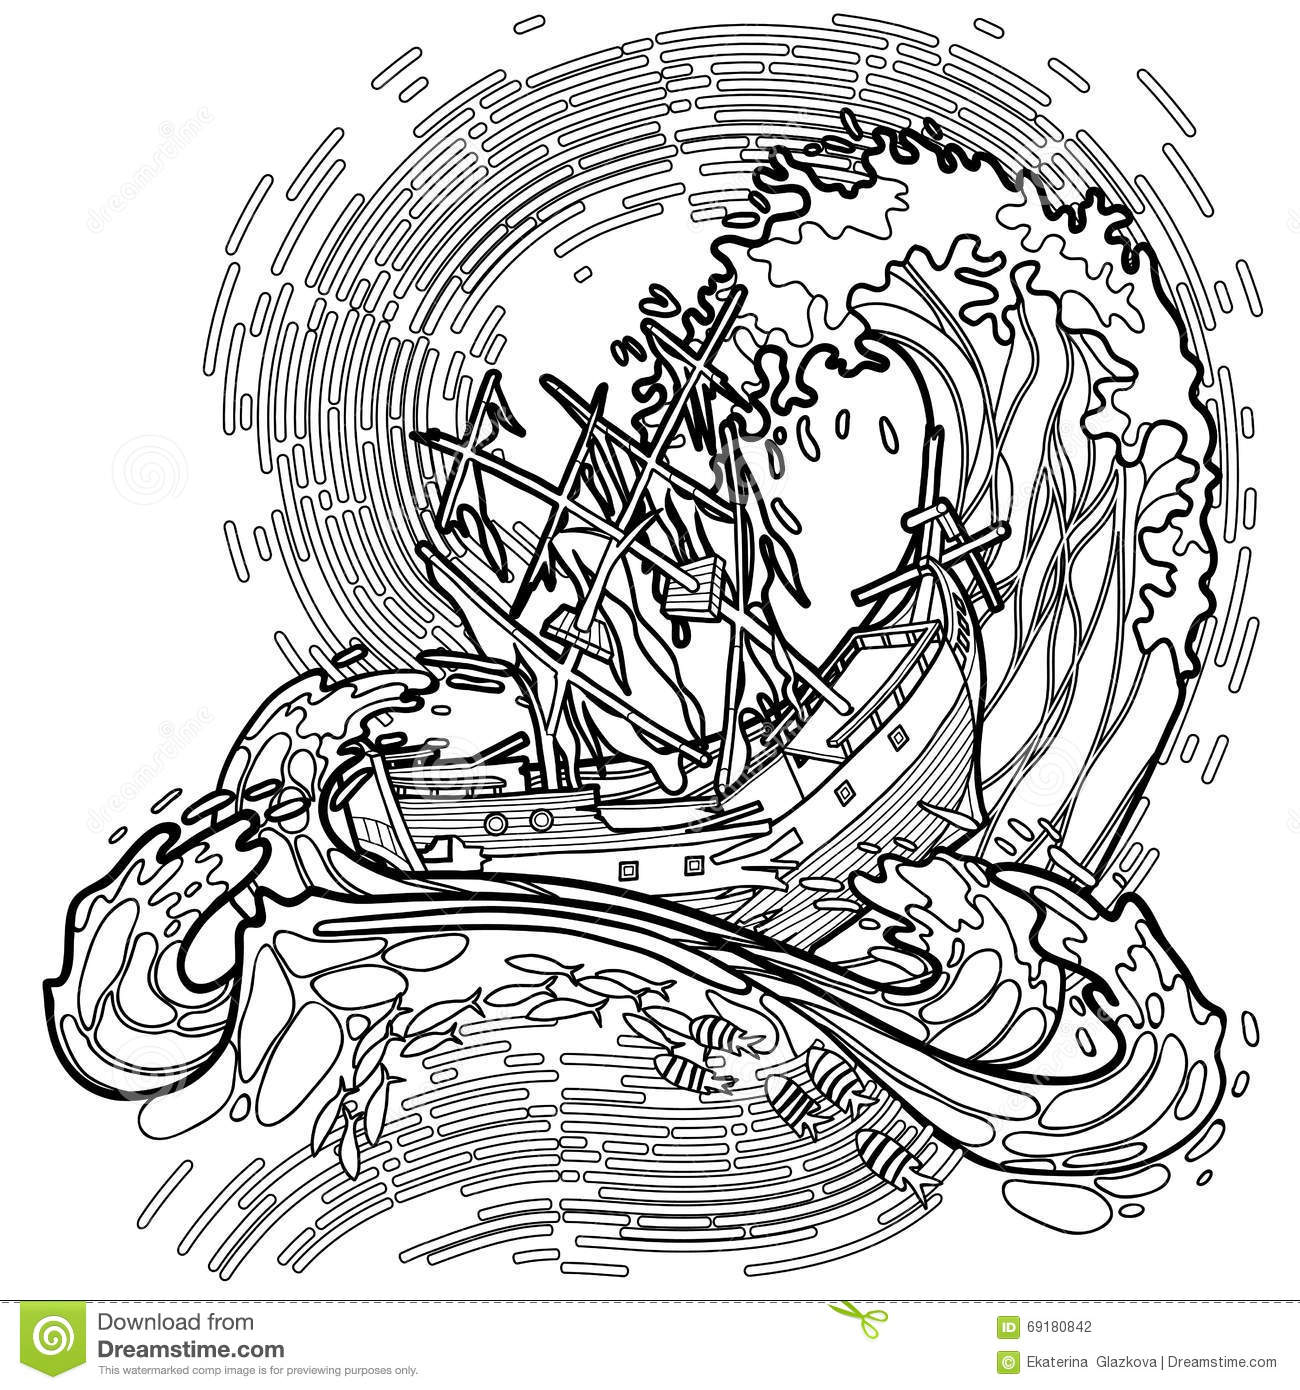 ocean storm coloring pages - photo#20